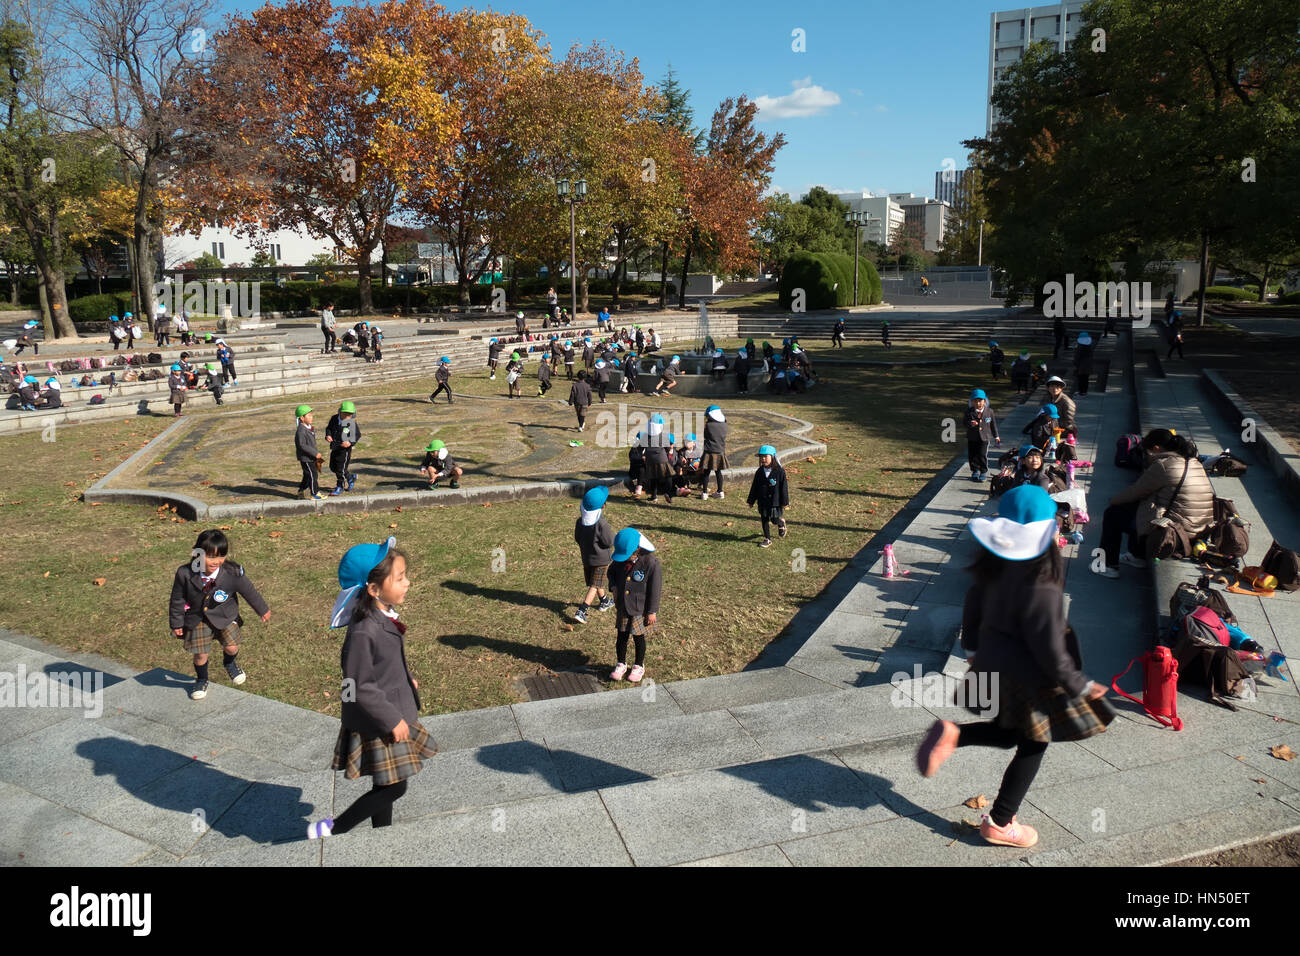 Young Japanese students, school children playing, having fun in Central Park (Chuo Koen) in Hiroshima, Japan, Asia - Stock Image